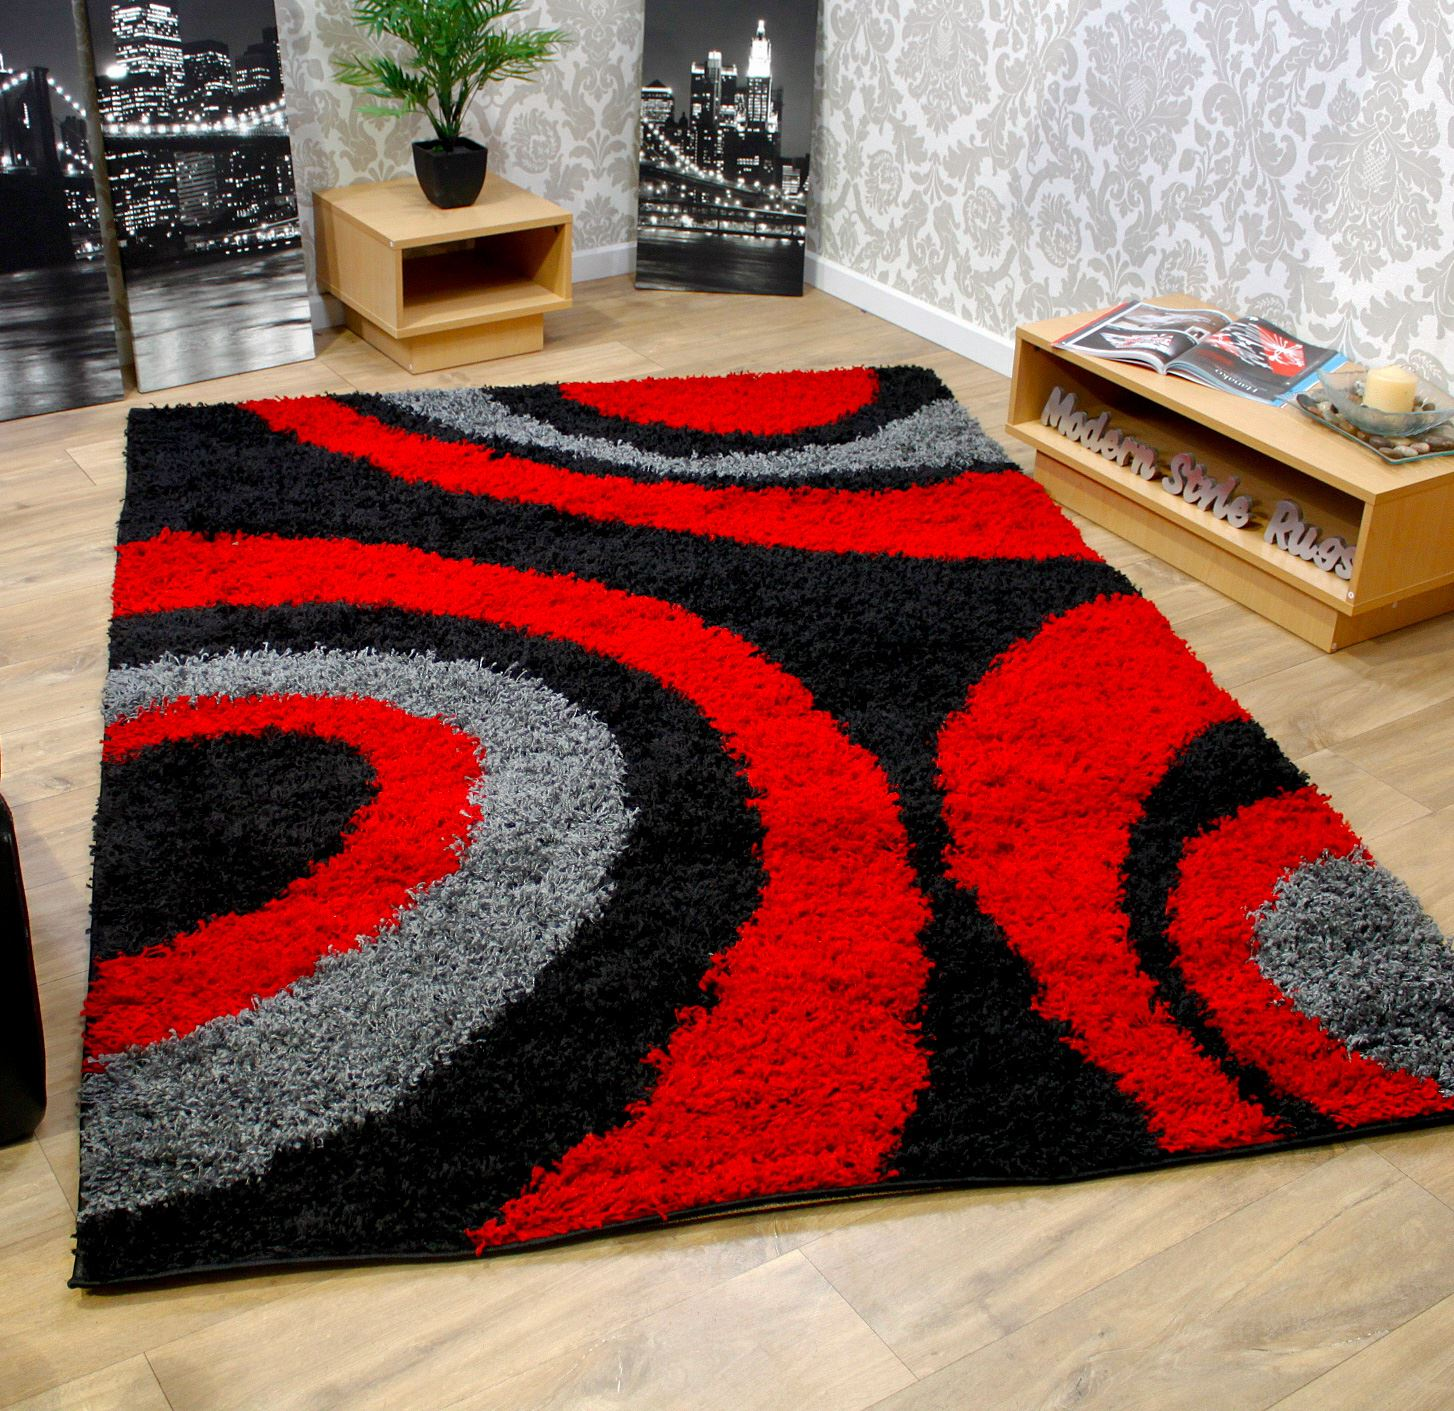 Black And White Extra Large Rug: Black Grey Red Shaggy 5cm Thick Non Shed Shag Pile Extra